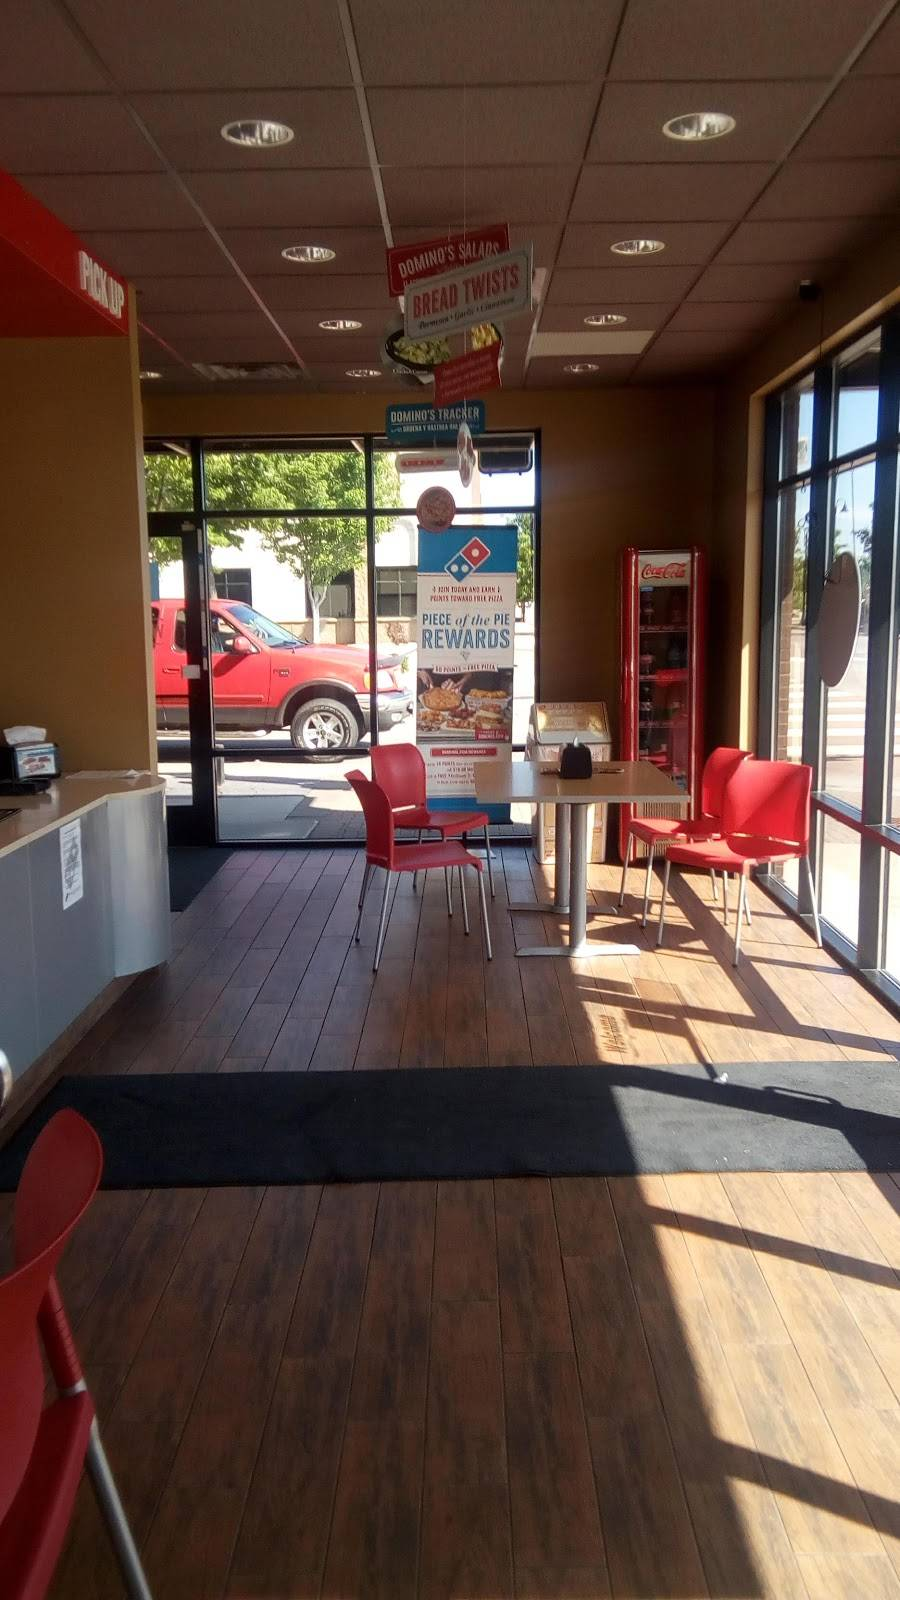 Dominos Pizza | meal delivery | 202 2nd Ave N, Sauk Rapids, MN 56379, USA | 3202514885 OR +1 320-251-4885